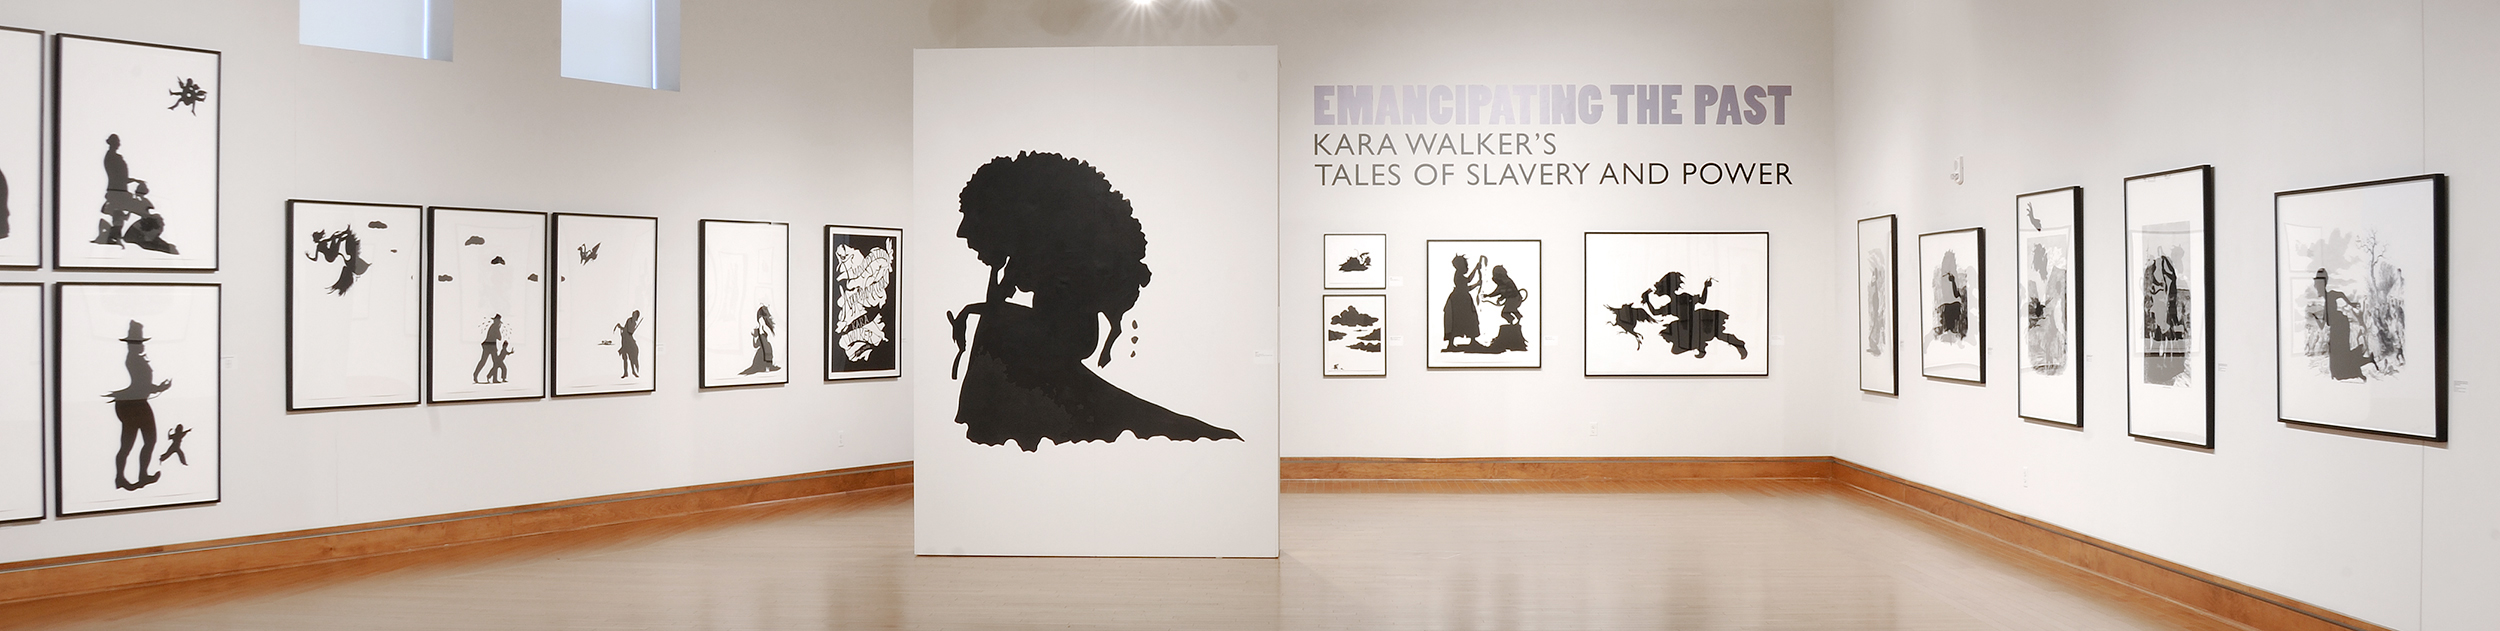 Photo of Emancipating the Past: Kara Walker's Tales of Slavery and Power exhibition at the David C. Driskell Center in 2015